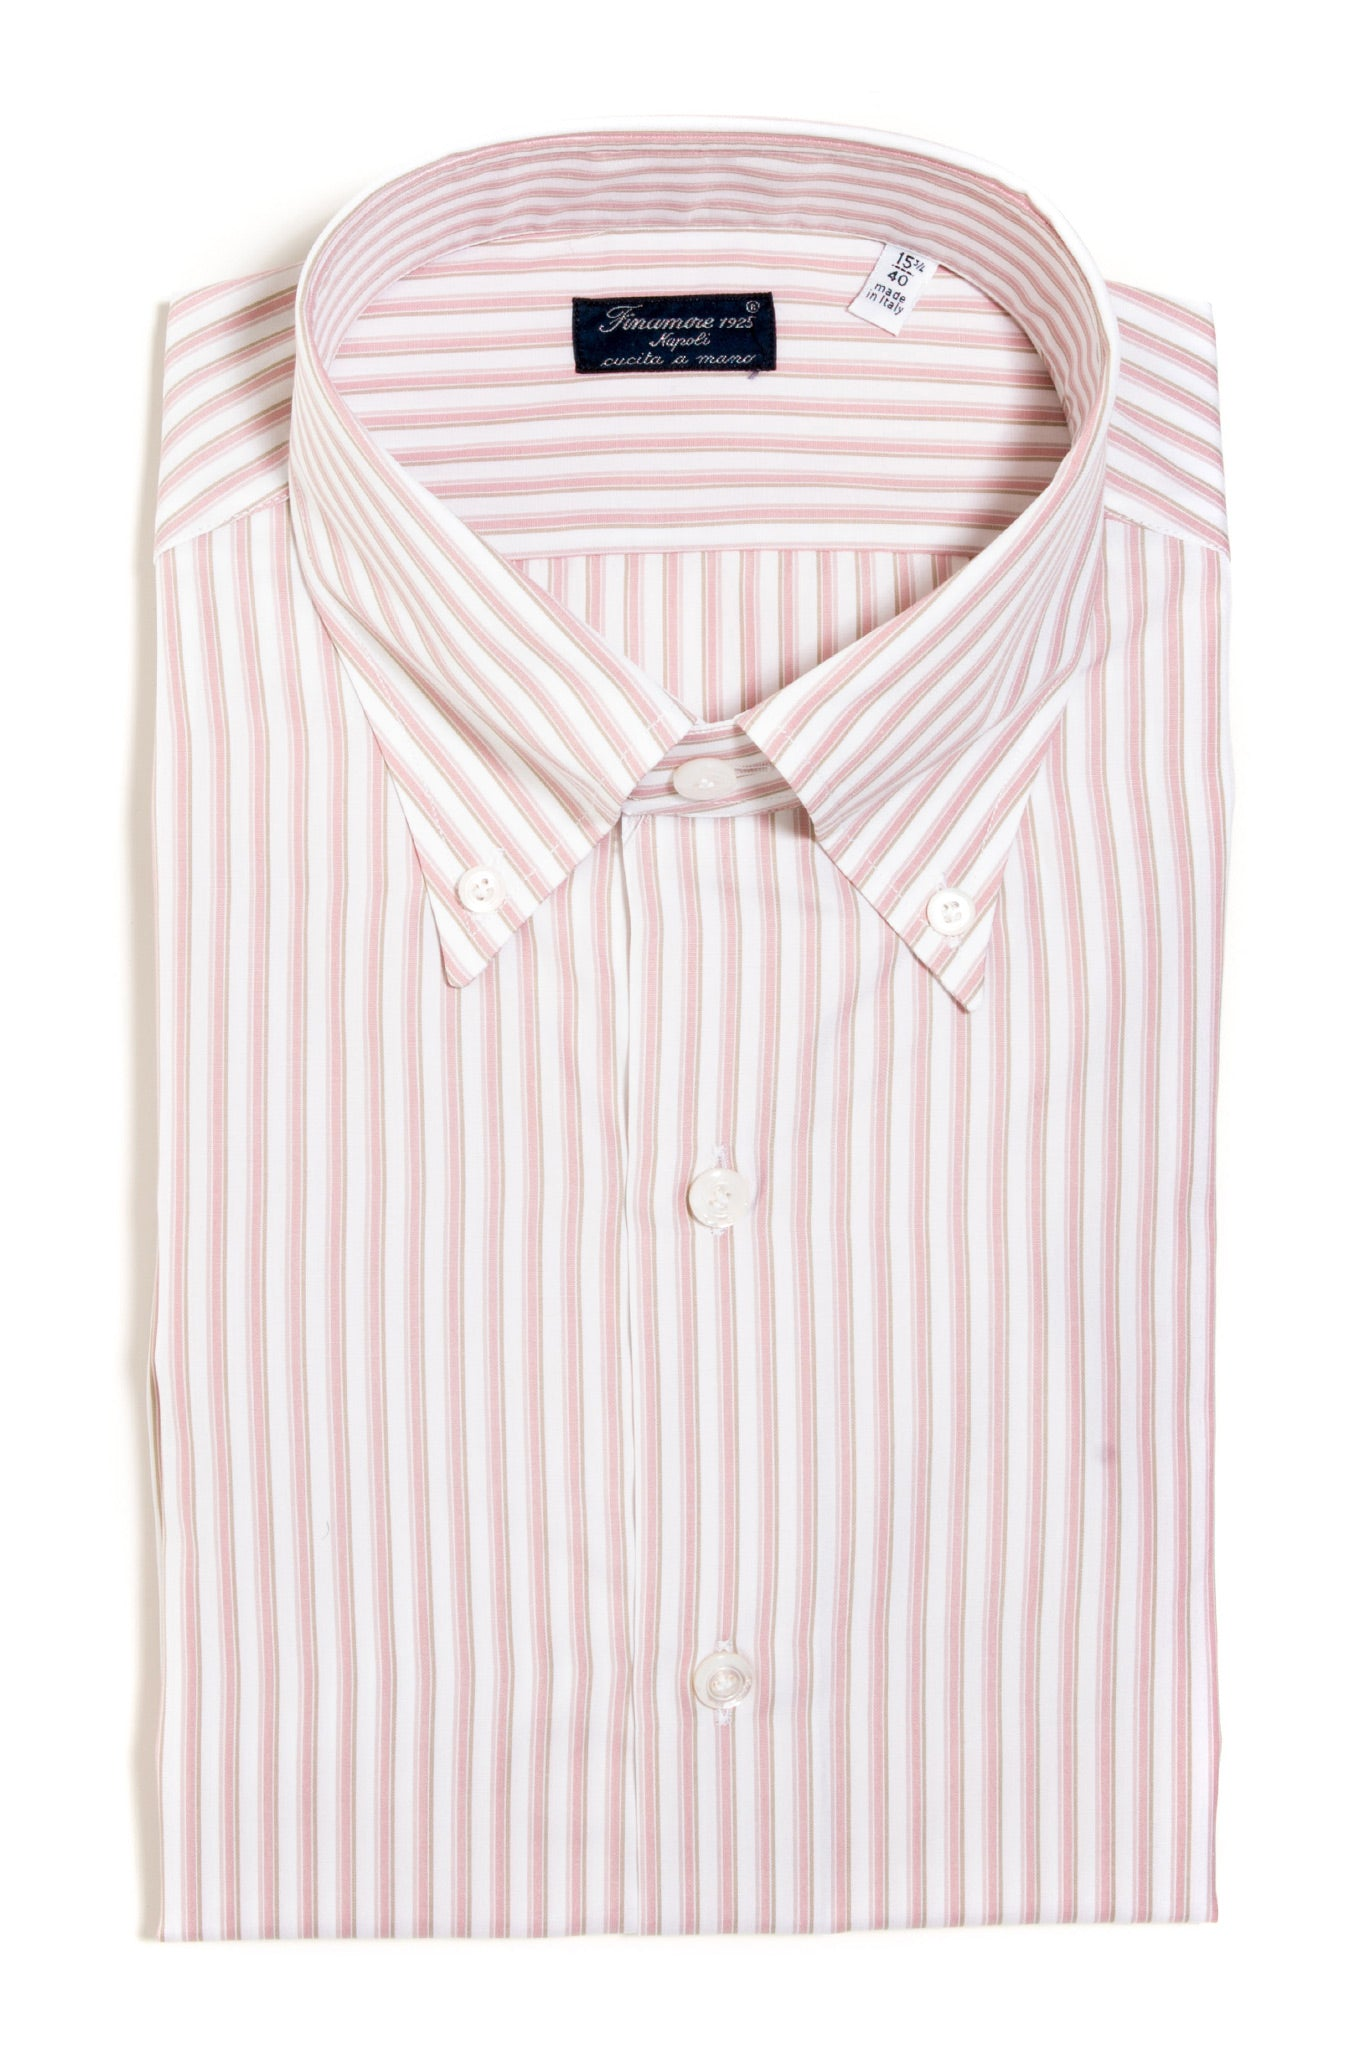 Finamore Alfieri Poplin Dress Shirt (147338133528)